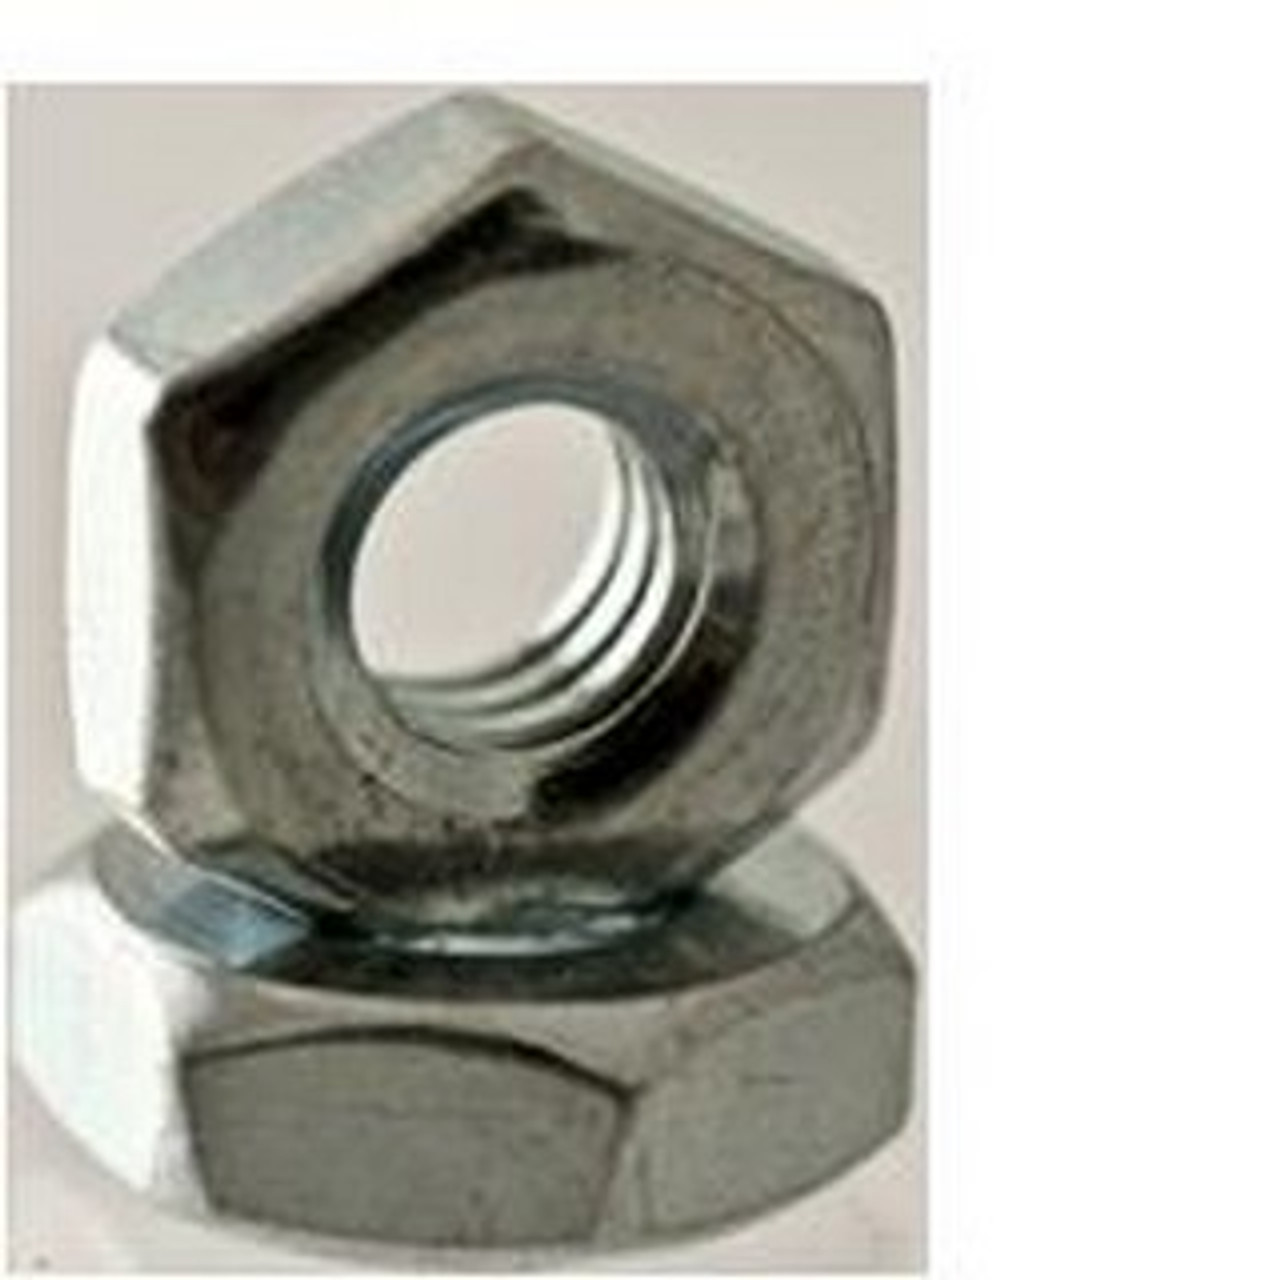 Qty 1000 Stainless Steel Hex Machine Screw Nut Small Pattern #4-40